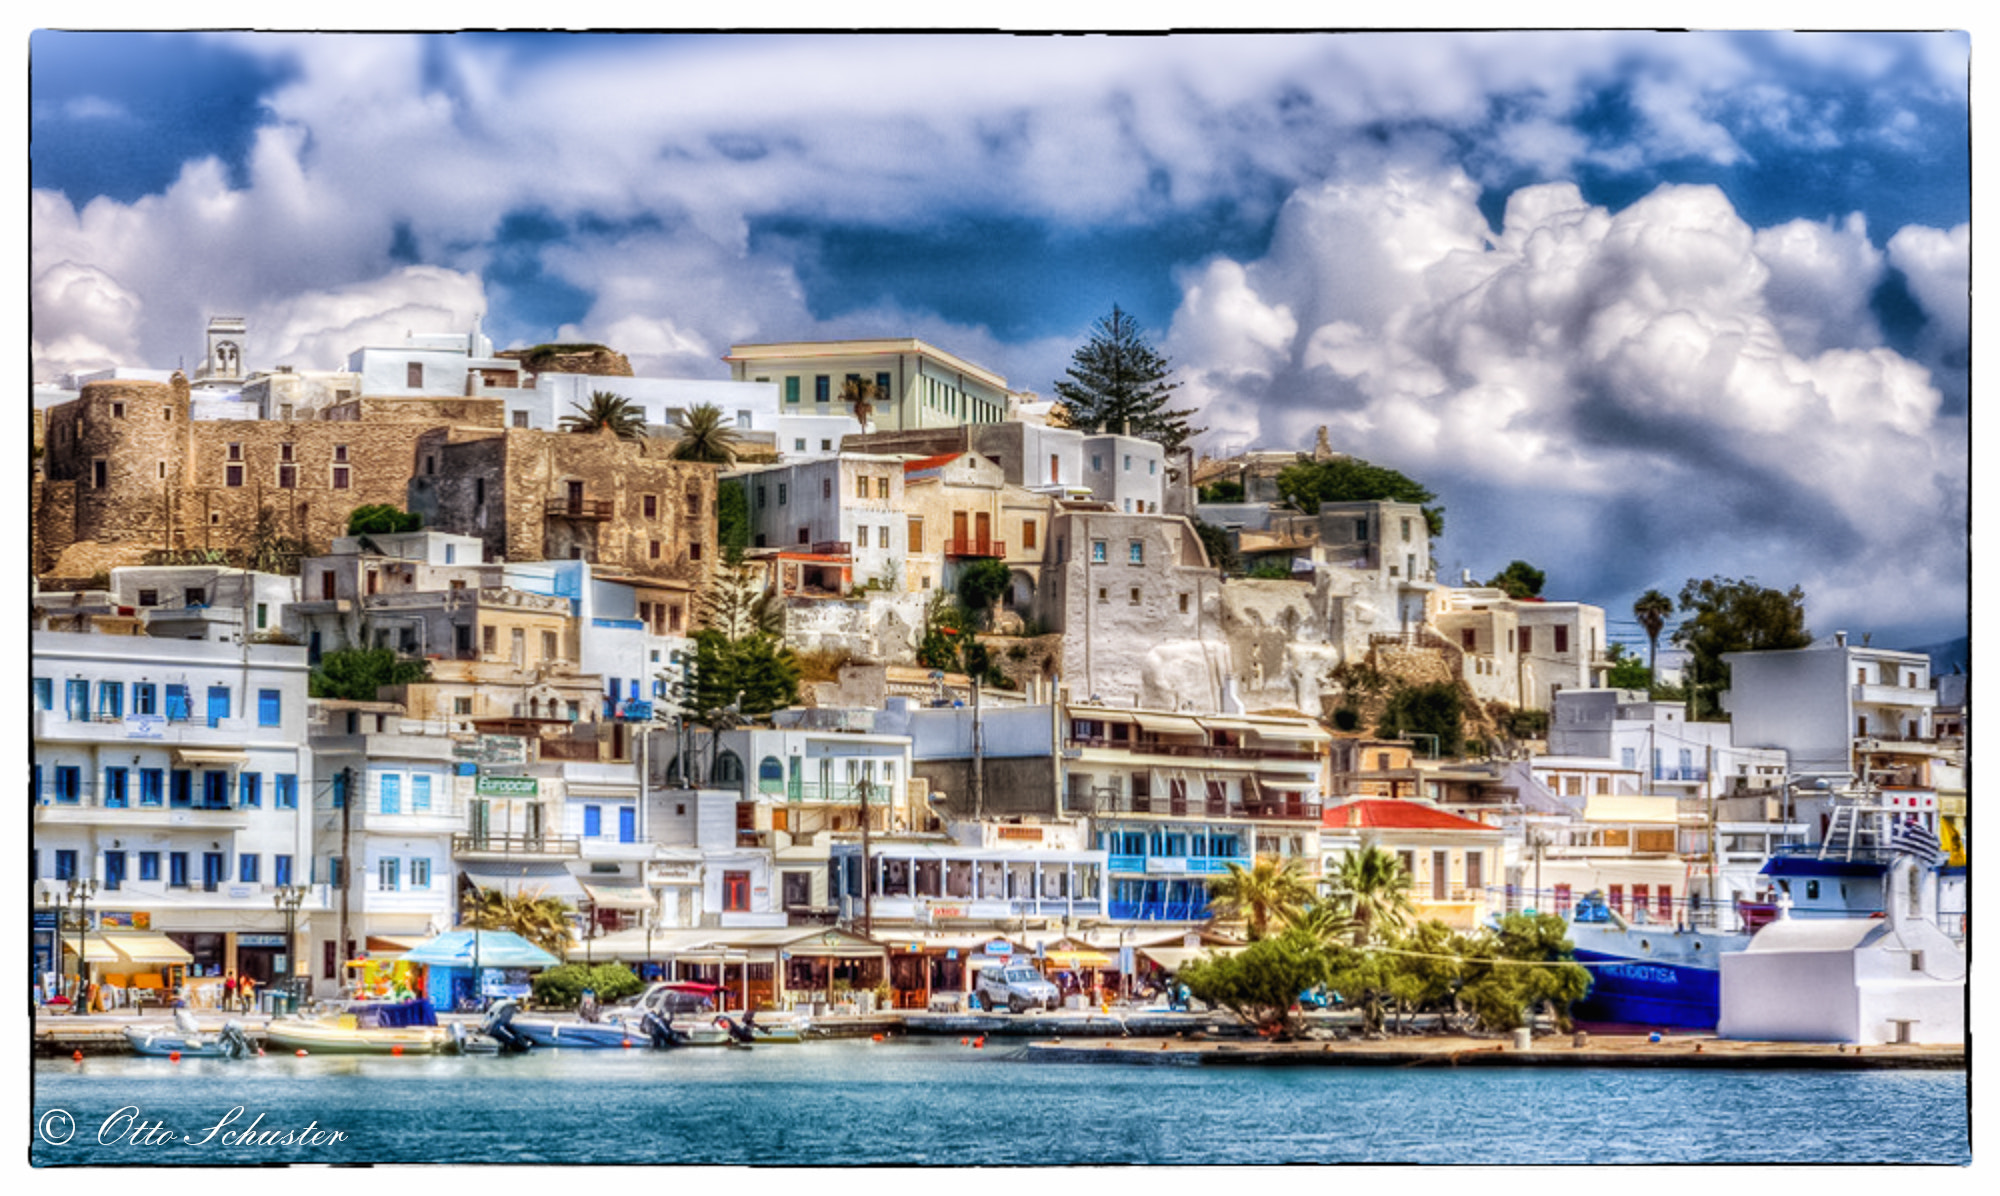 Photograph Naxos Chora by Otto Schuster on 500px